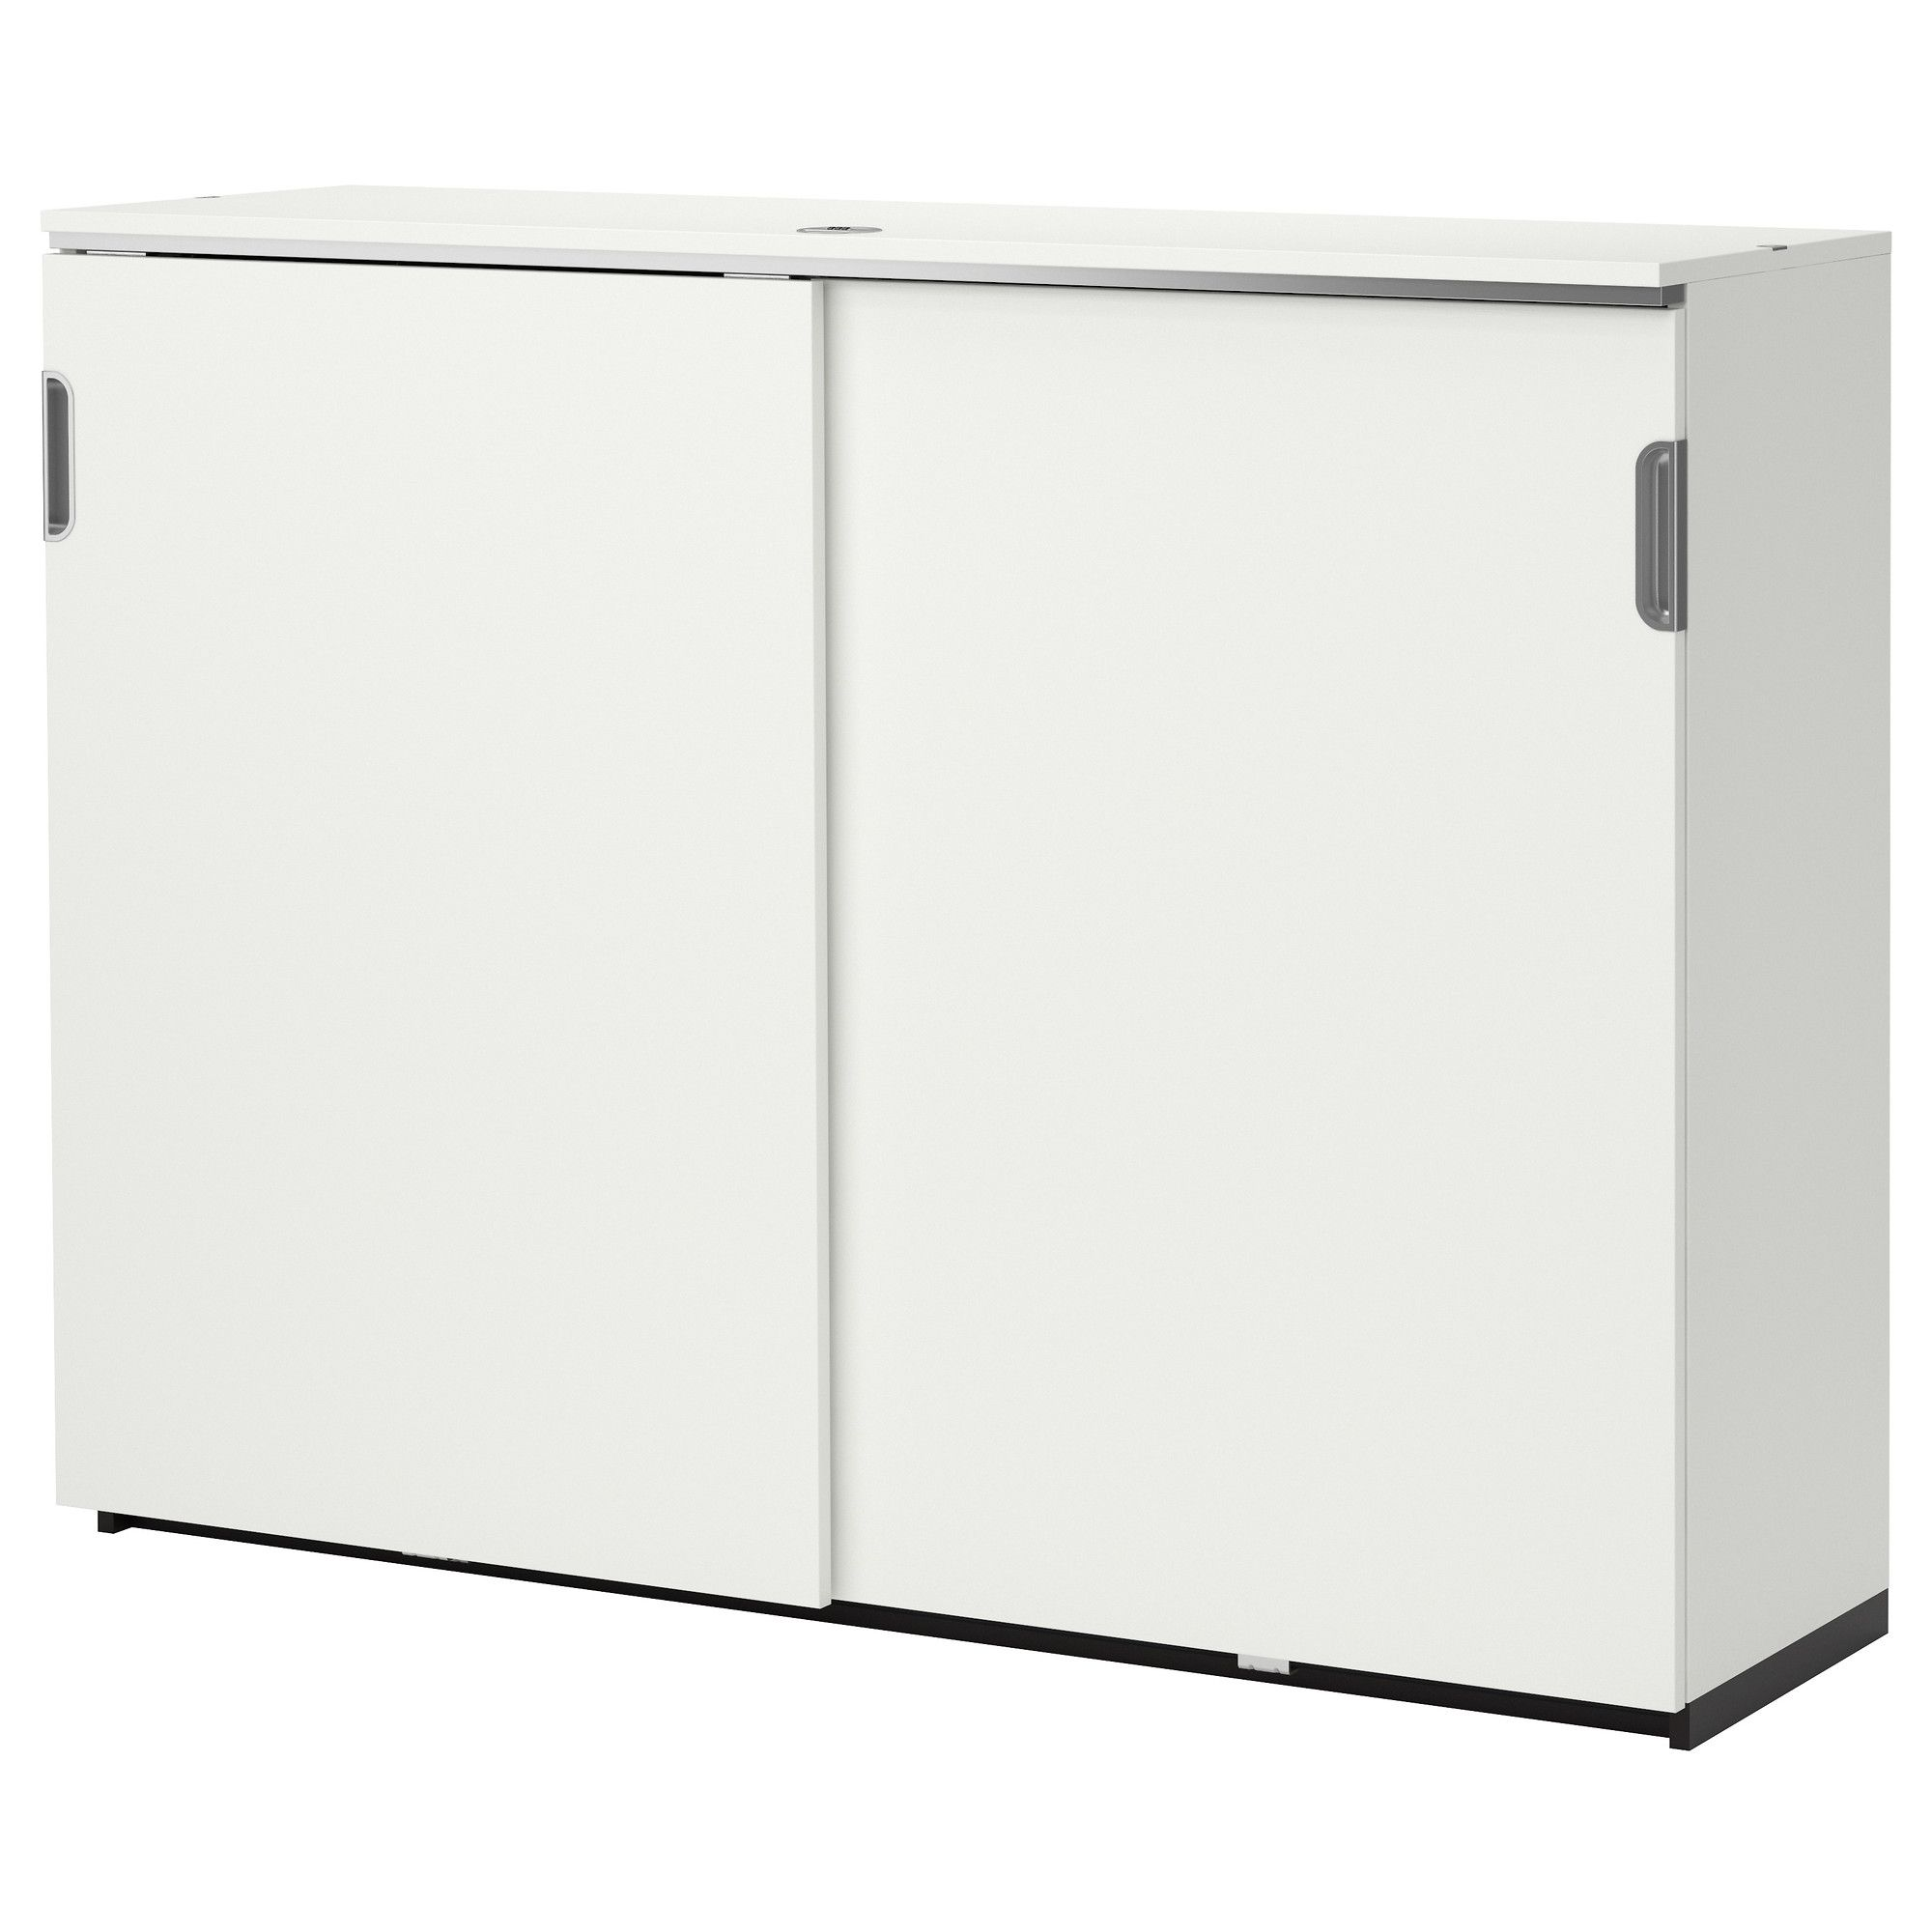 Storage Cabinet Sliding Doors Galant Meuble De Rangement Bouleau Plaquc Code For Sliding